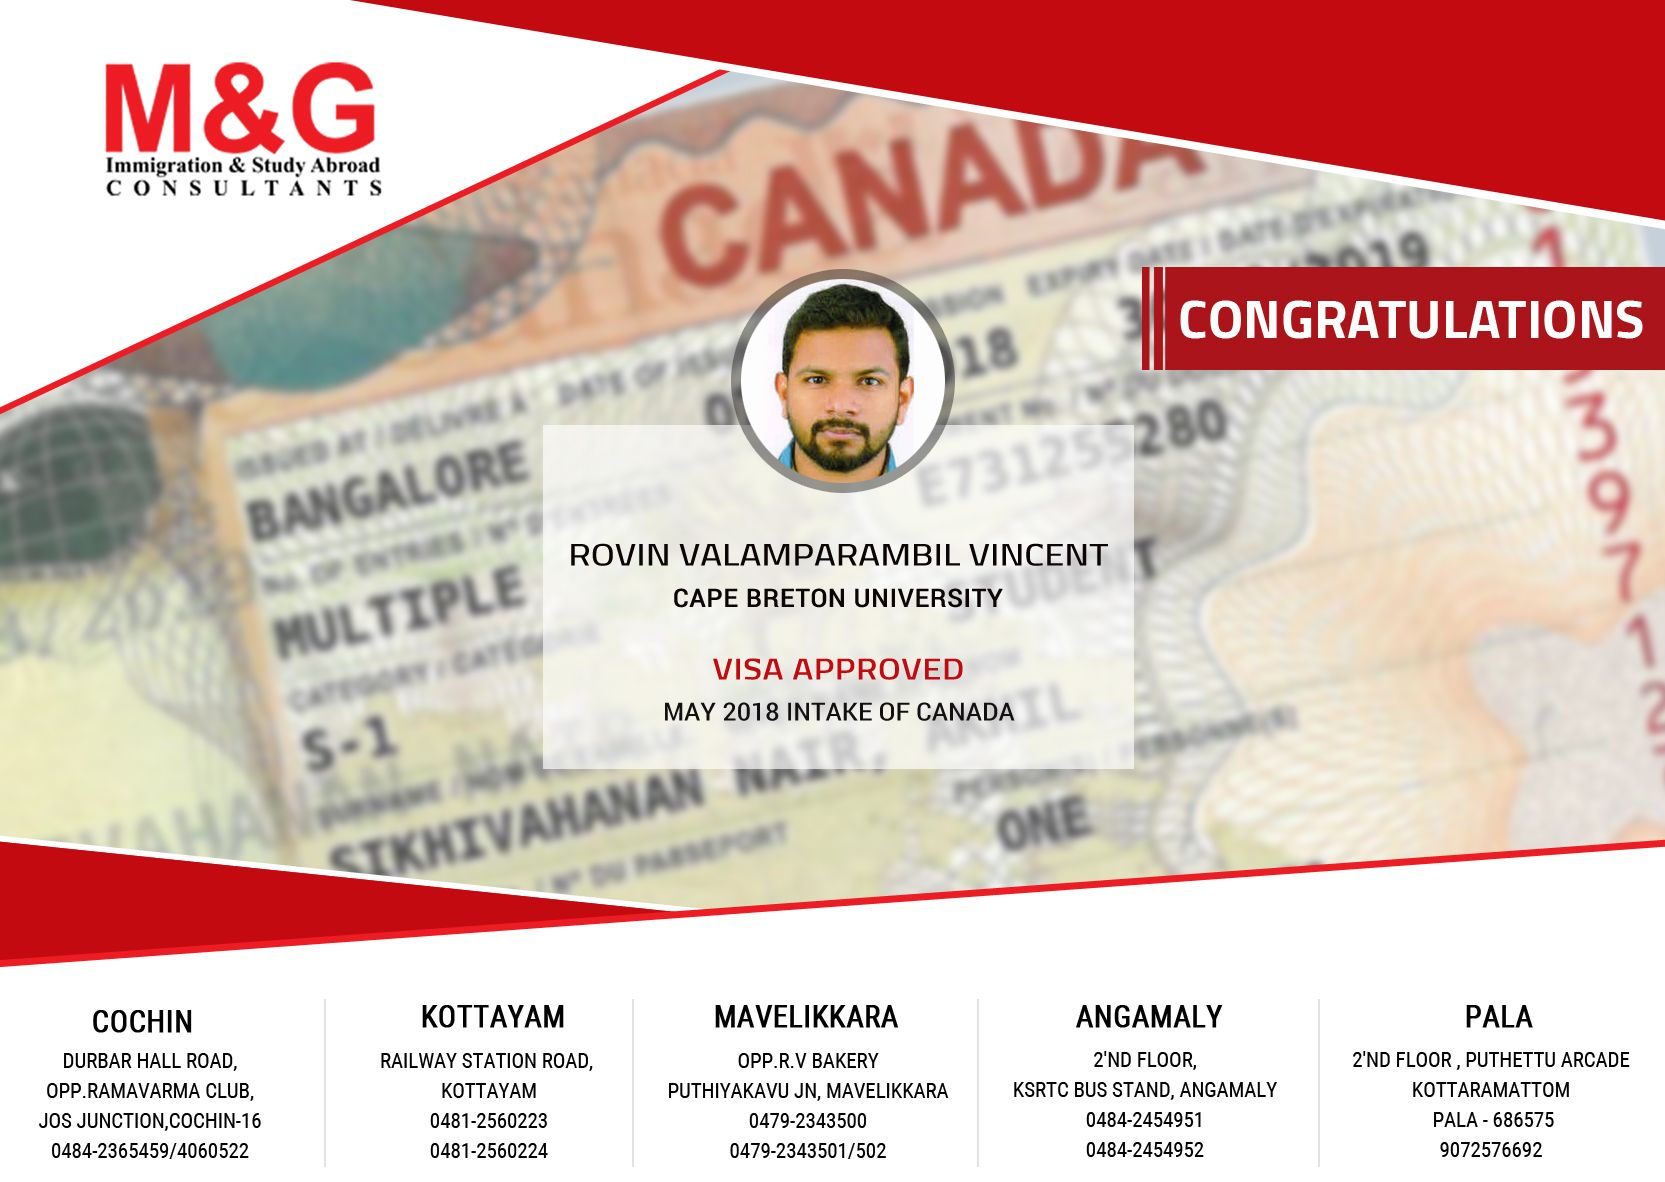 Congratulations To All On Getting Your Visa Approved Wishing All